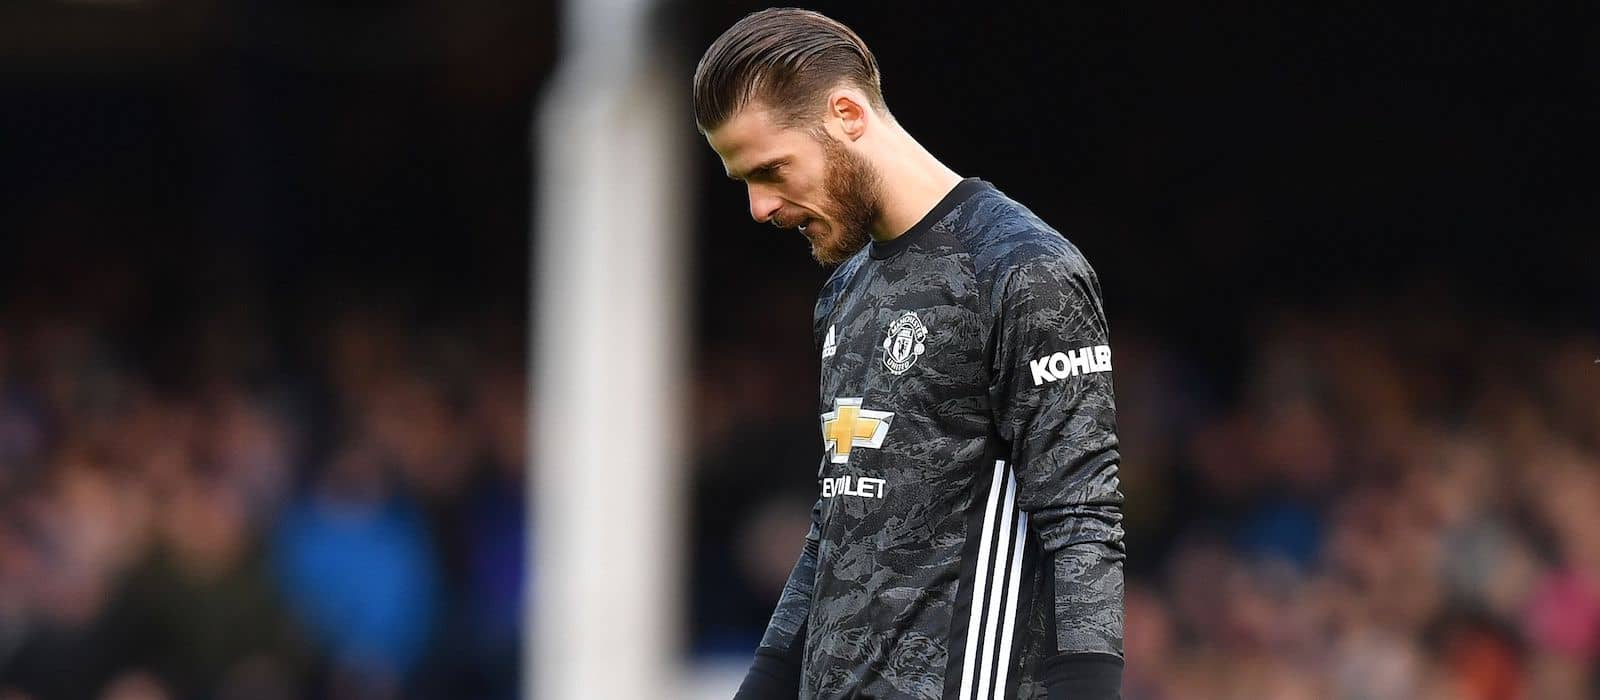 David de Gea's dreadful penalty save record – the stats behind the facts